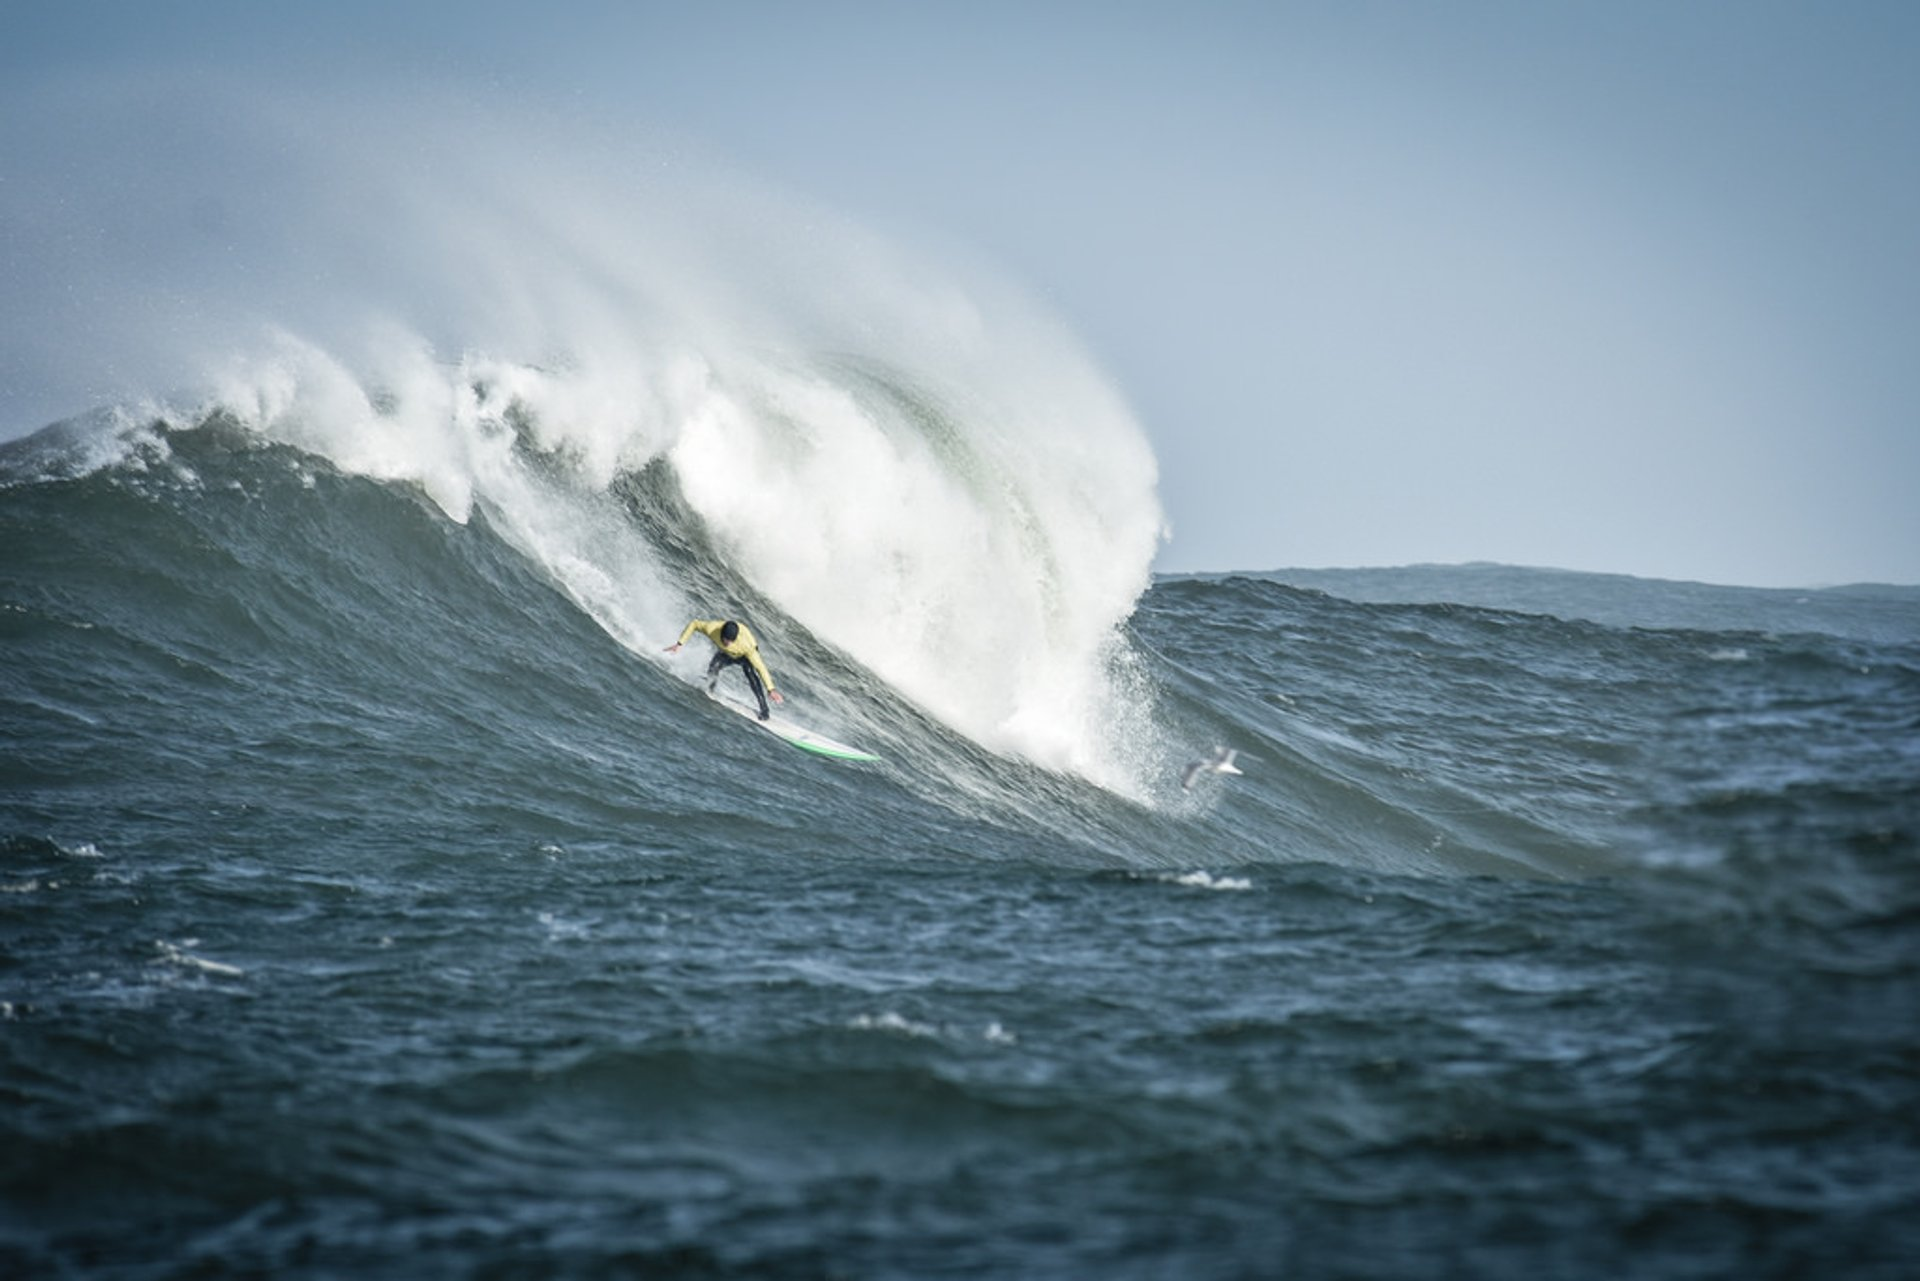 Mavericks, Half Moon Bay 2019